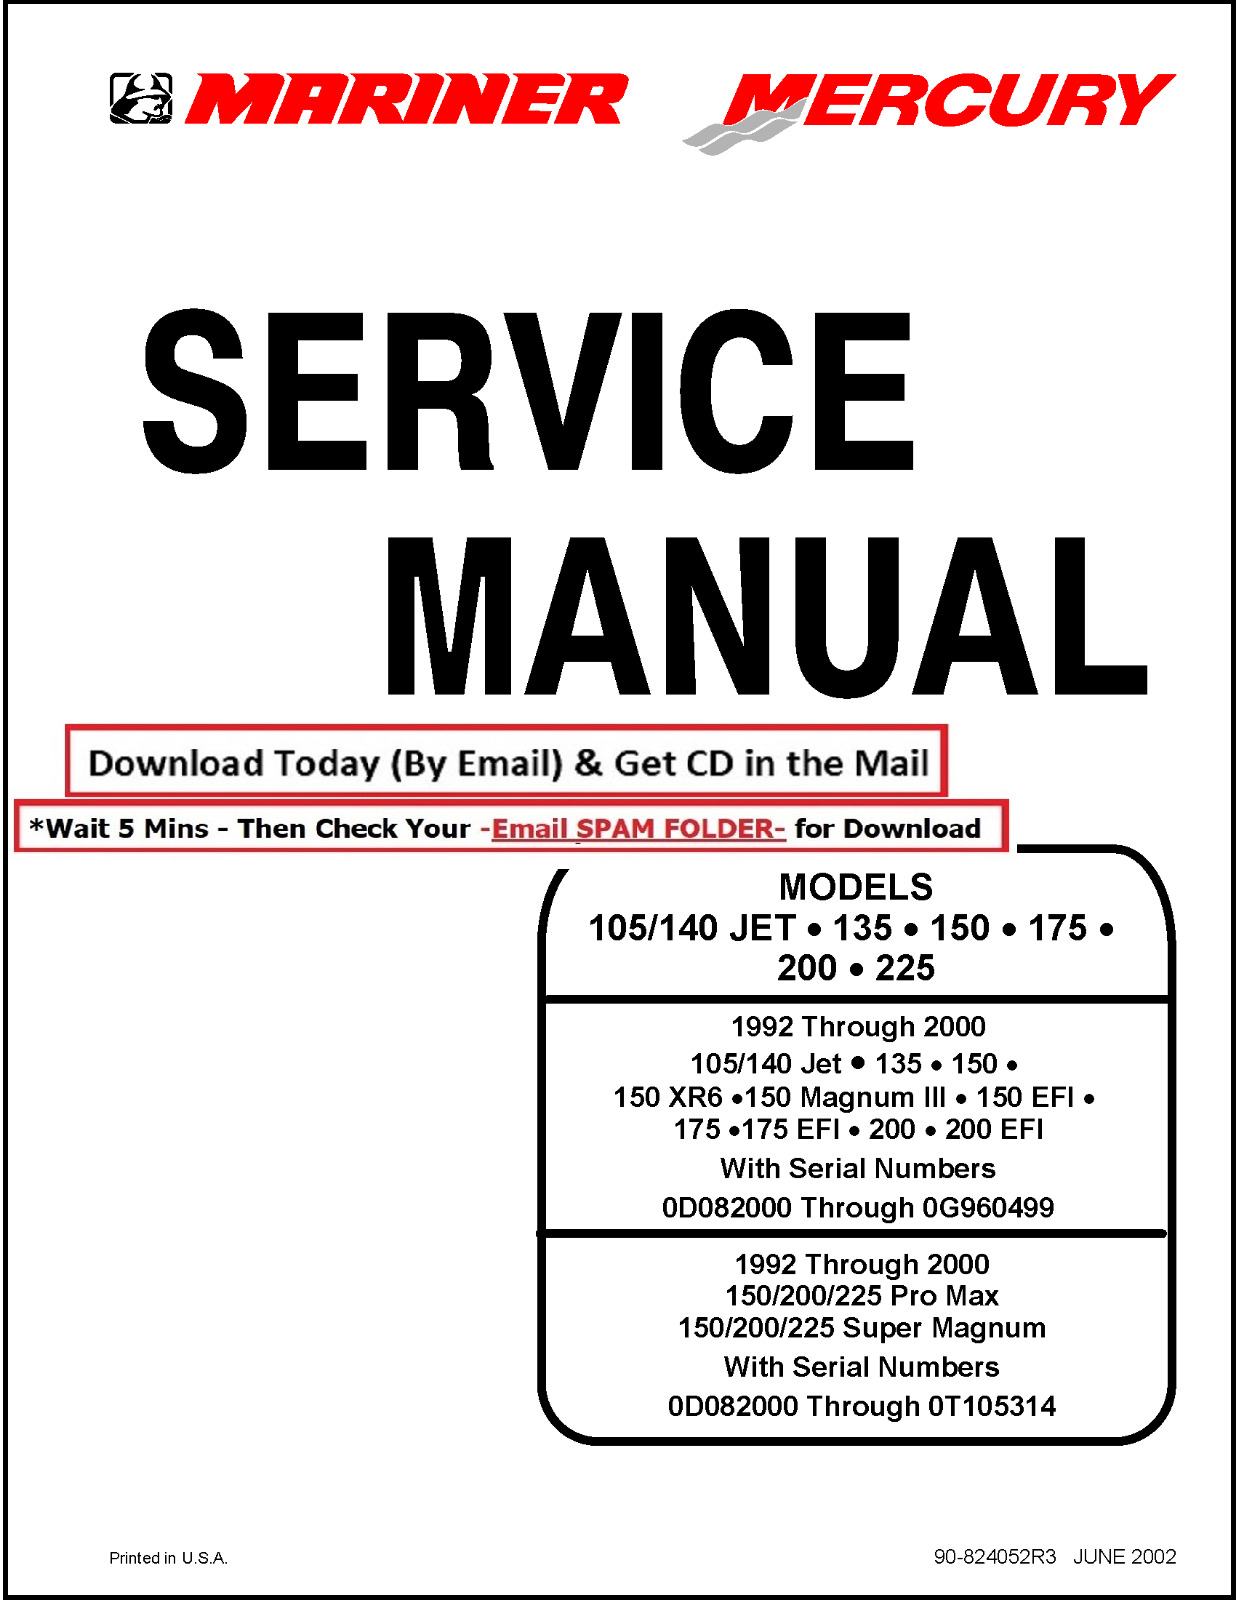 Mercury Mariner Service Manual 105/140 Jet 135 150 175 200 225 1 of 5Only 5  available ...